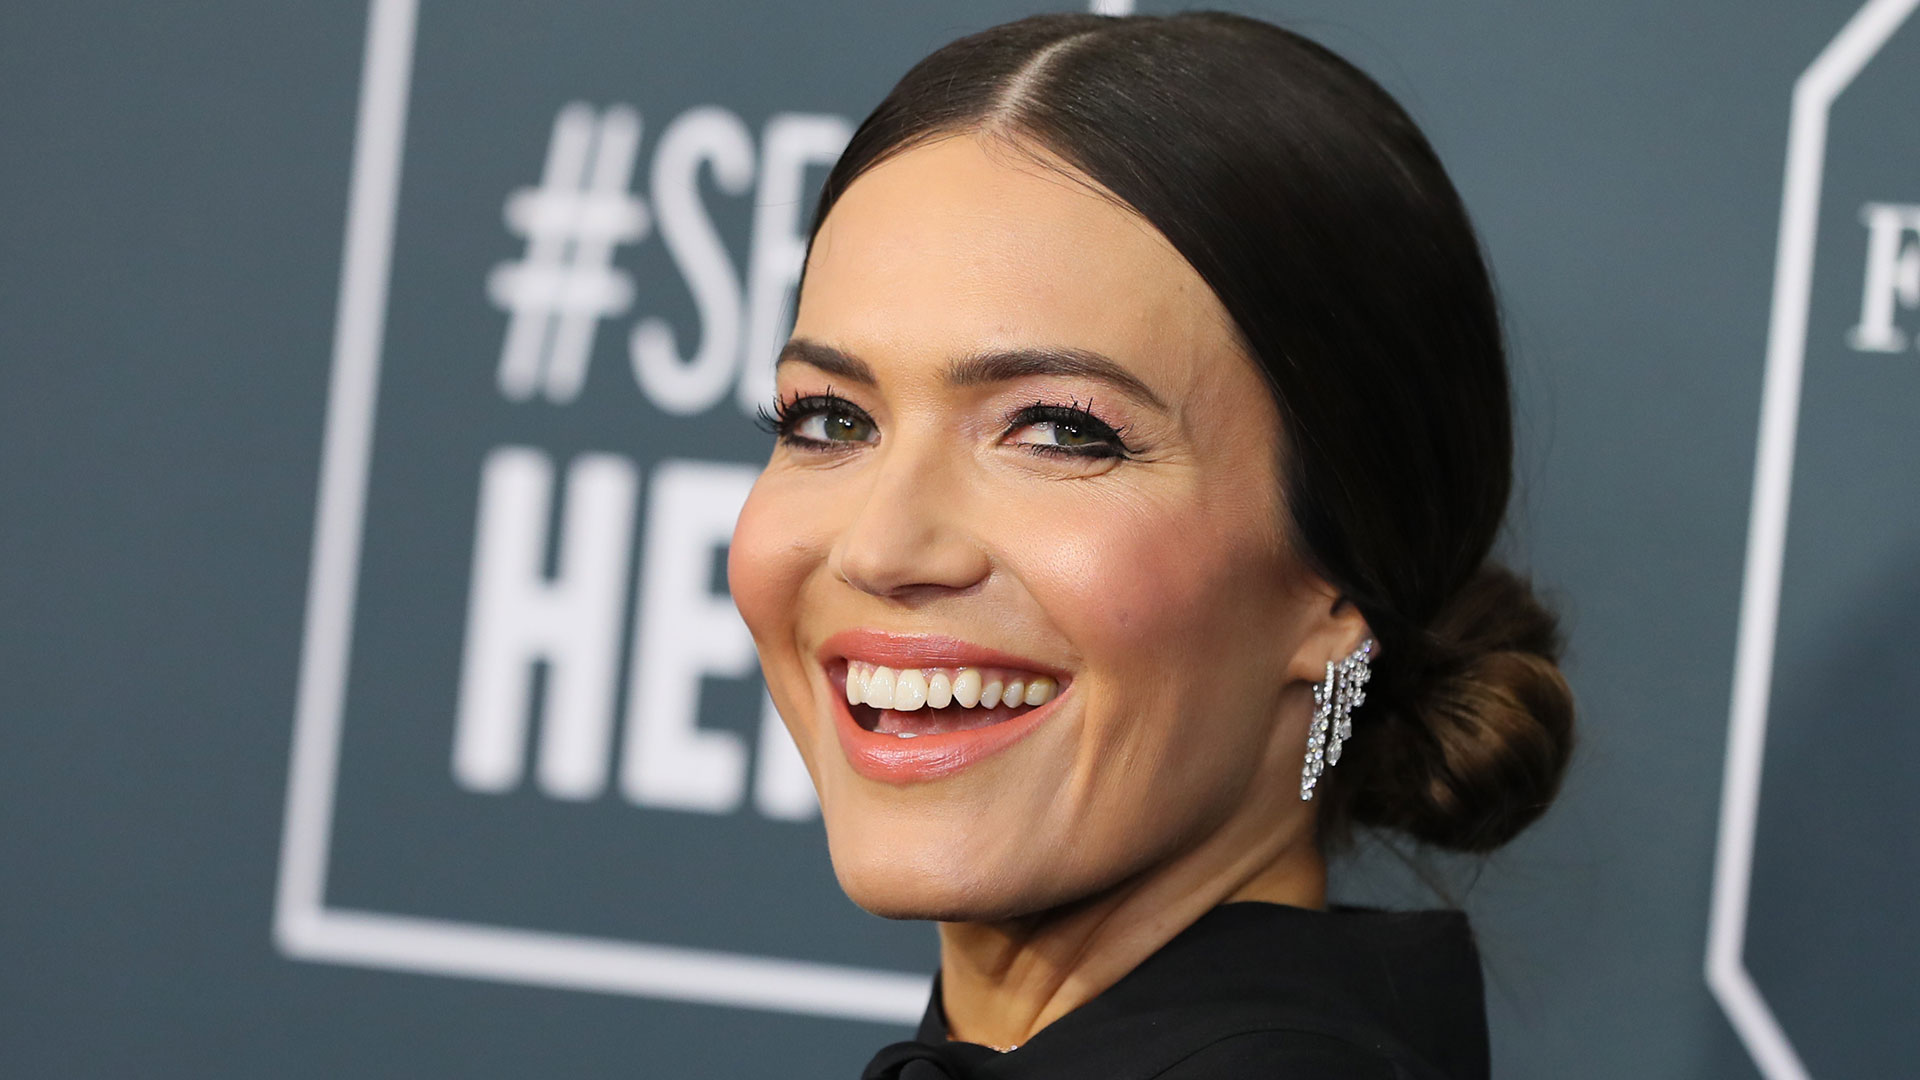 Mandy Moore Is Ready For Her Baby Boy To Arrive: The 'Anticipation Is Almost Too Much'